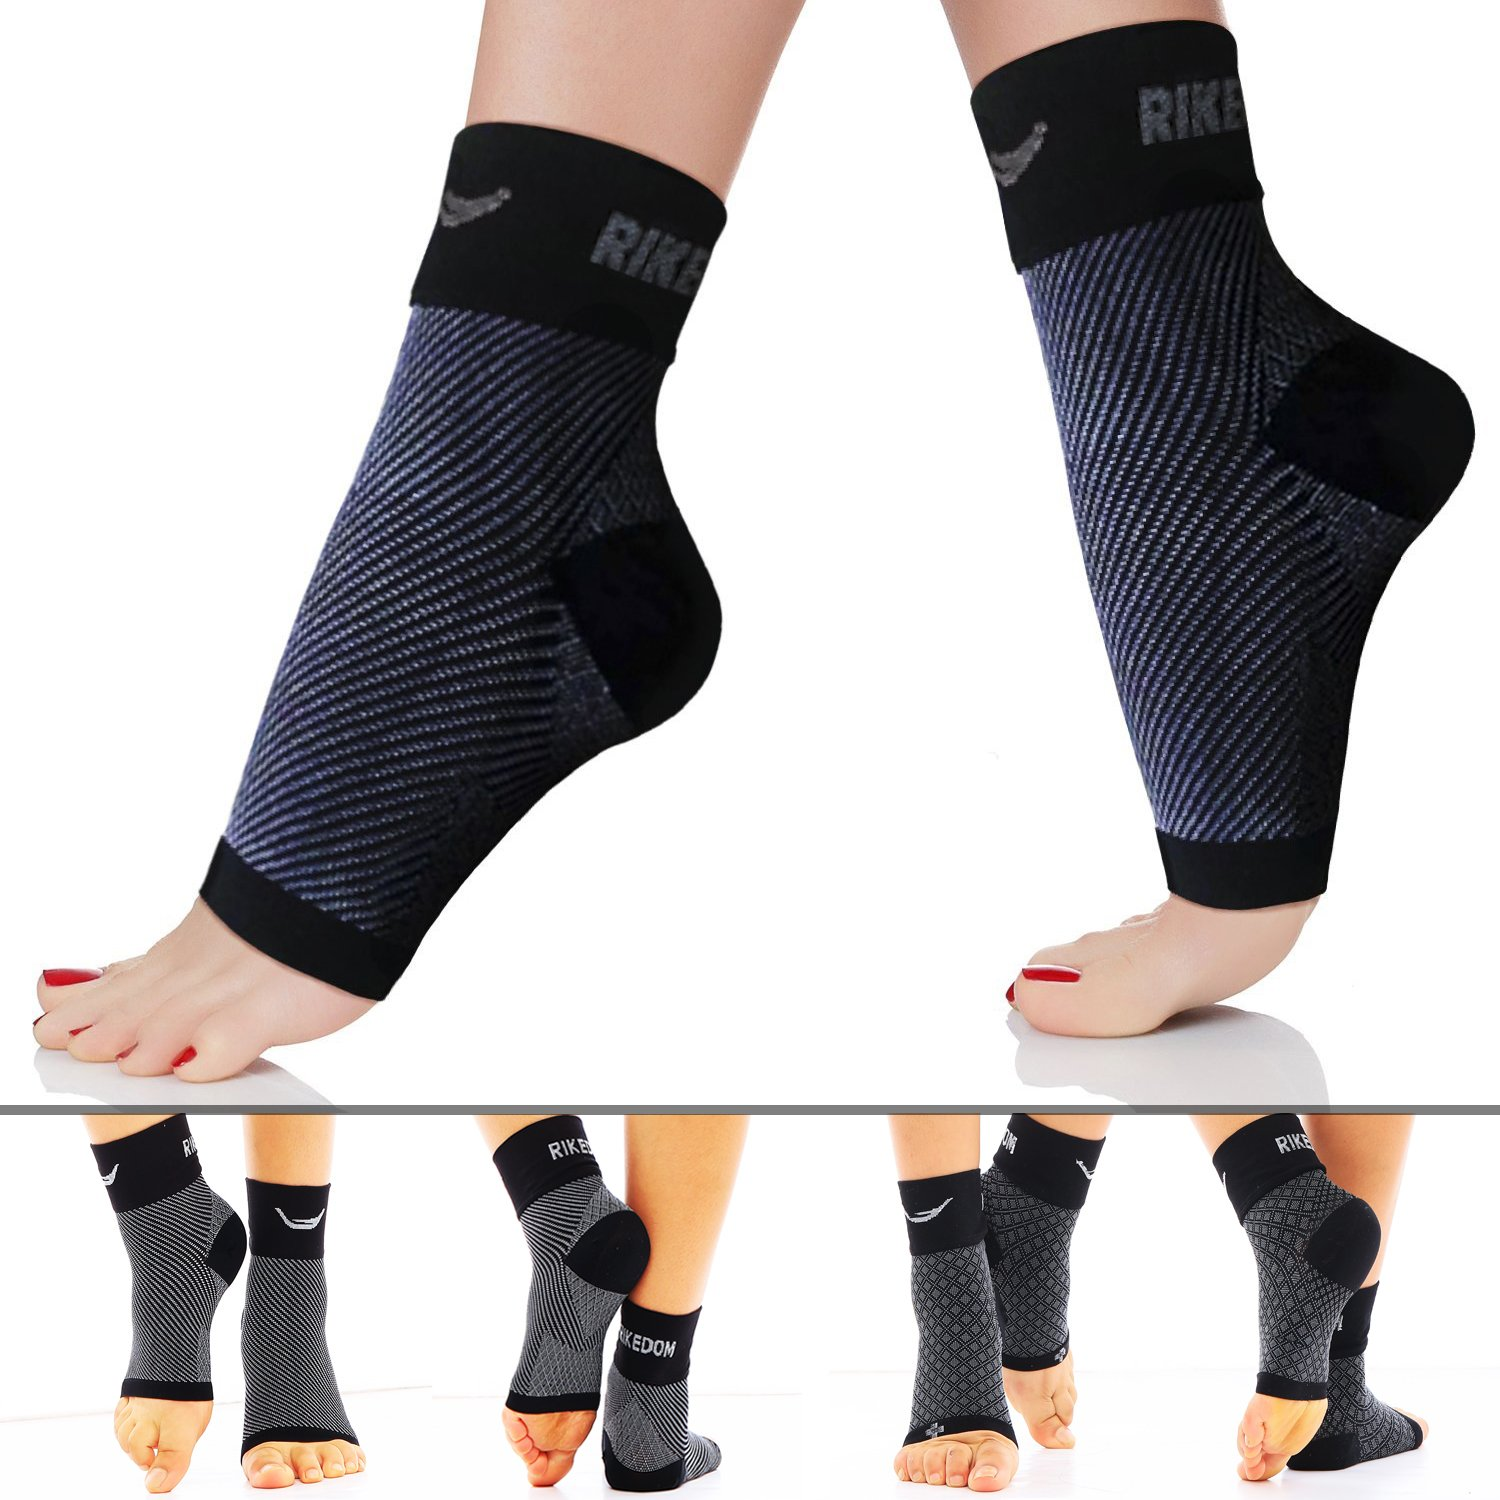 Amazon.com: Knee Sleeves Brace for Men Women - Support